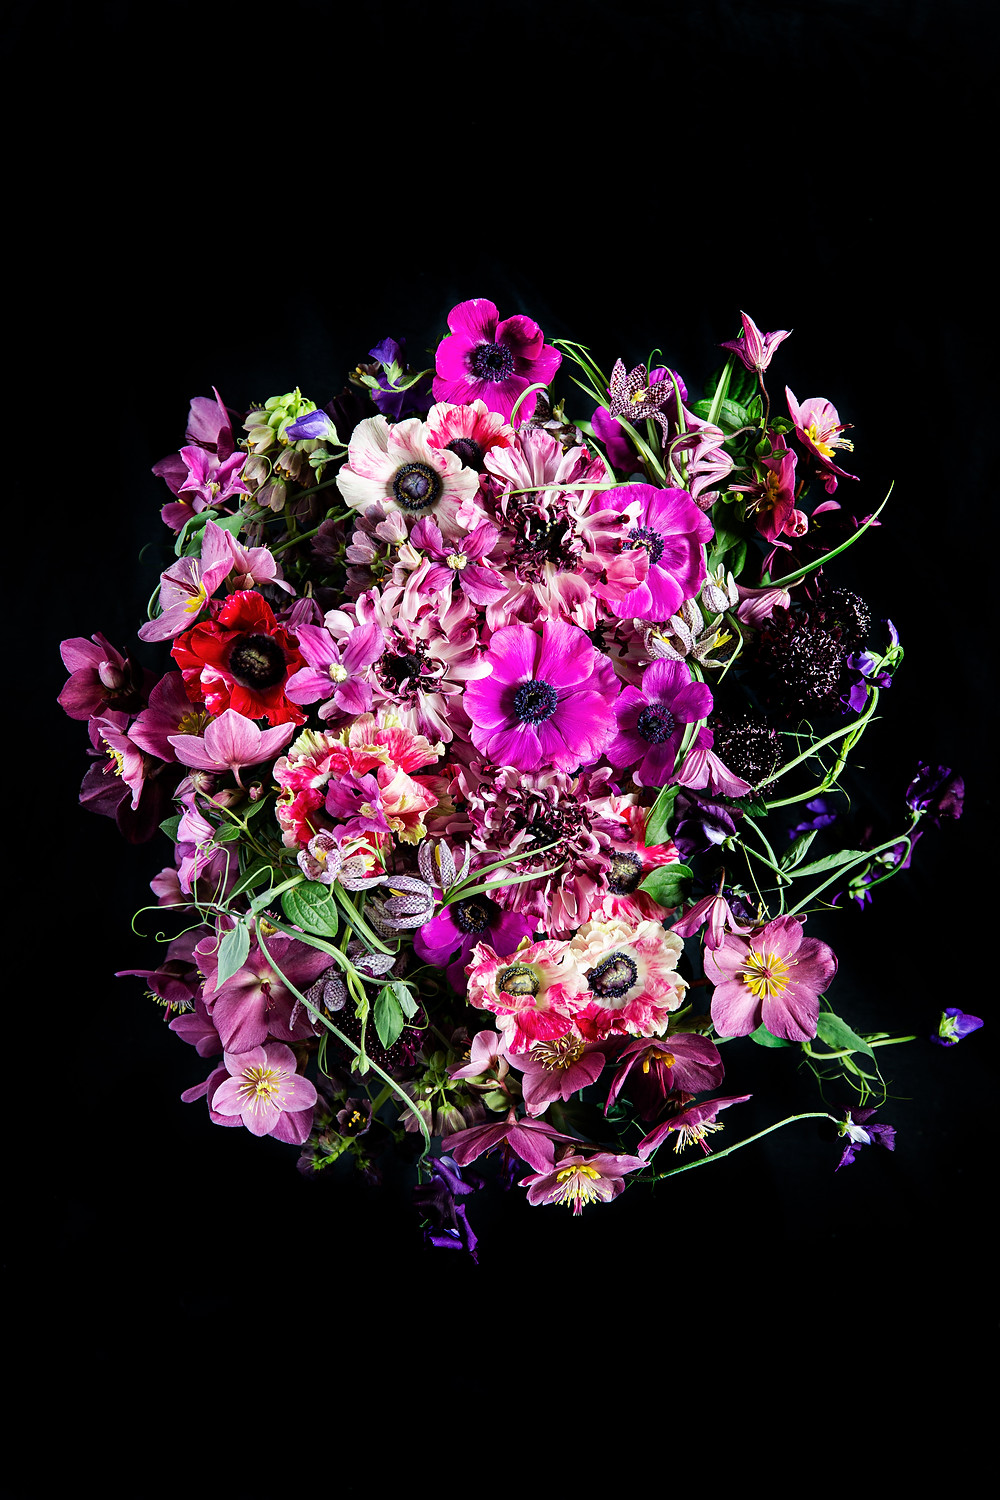 Floral photography using jewel toned flowers